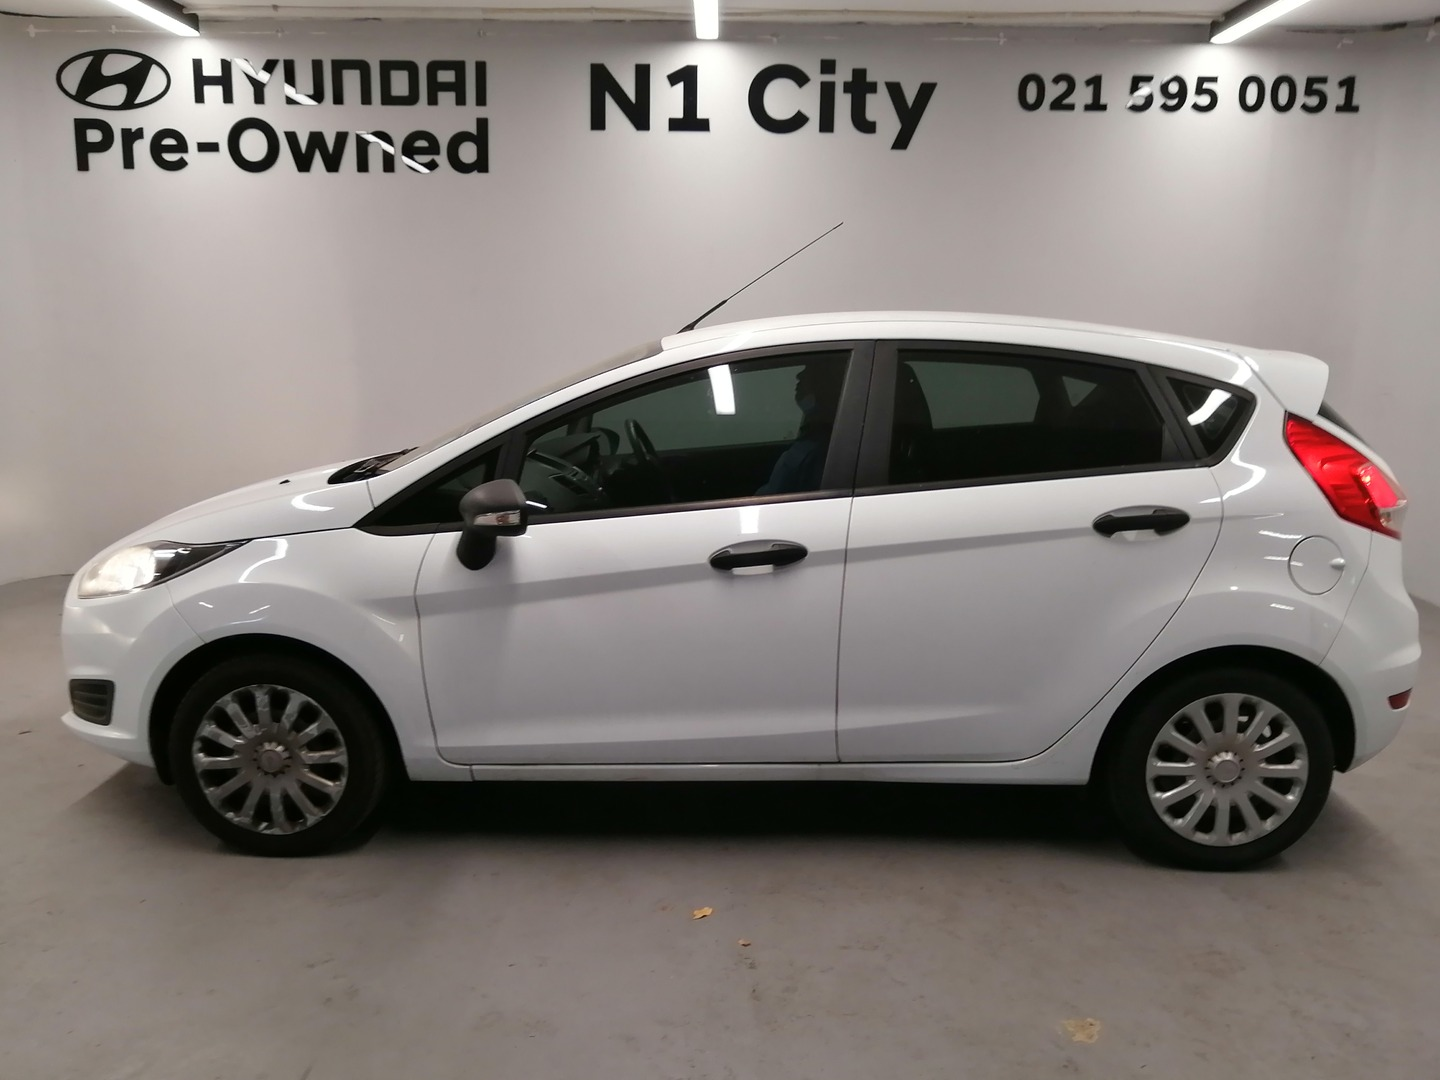 FORD 1.4 AMBIENTE 5 Dr Cape Town 6326507